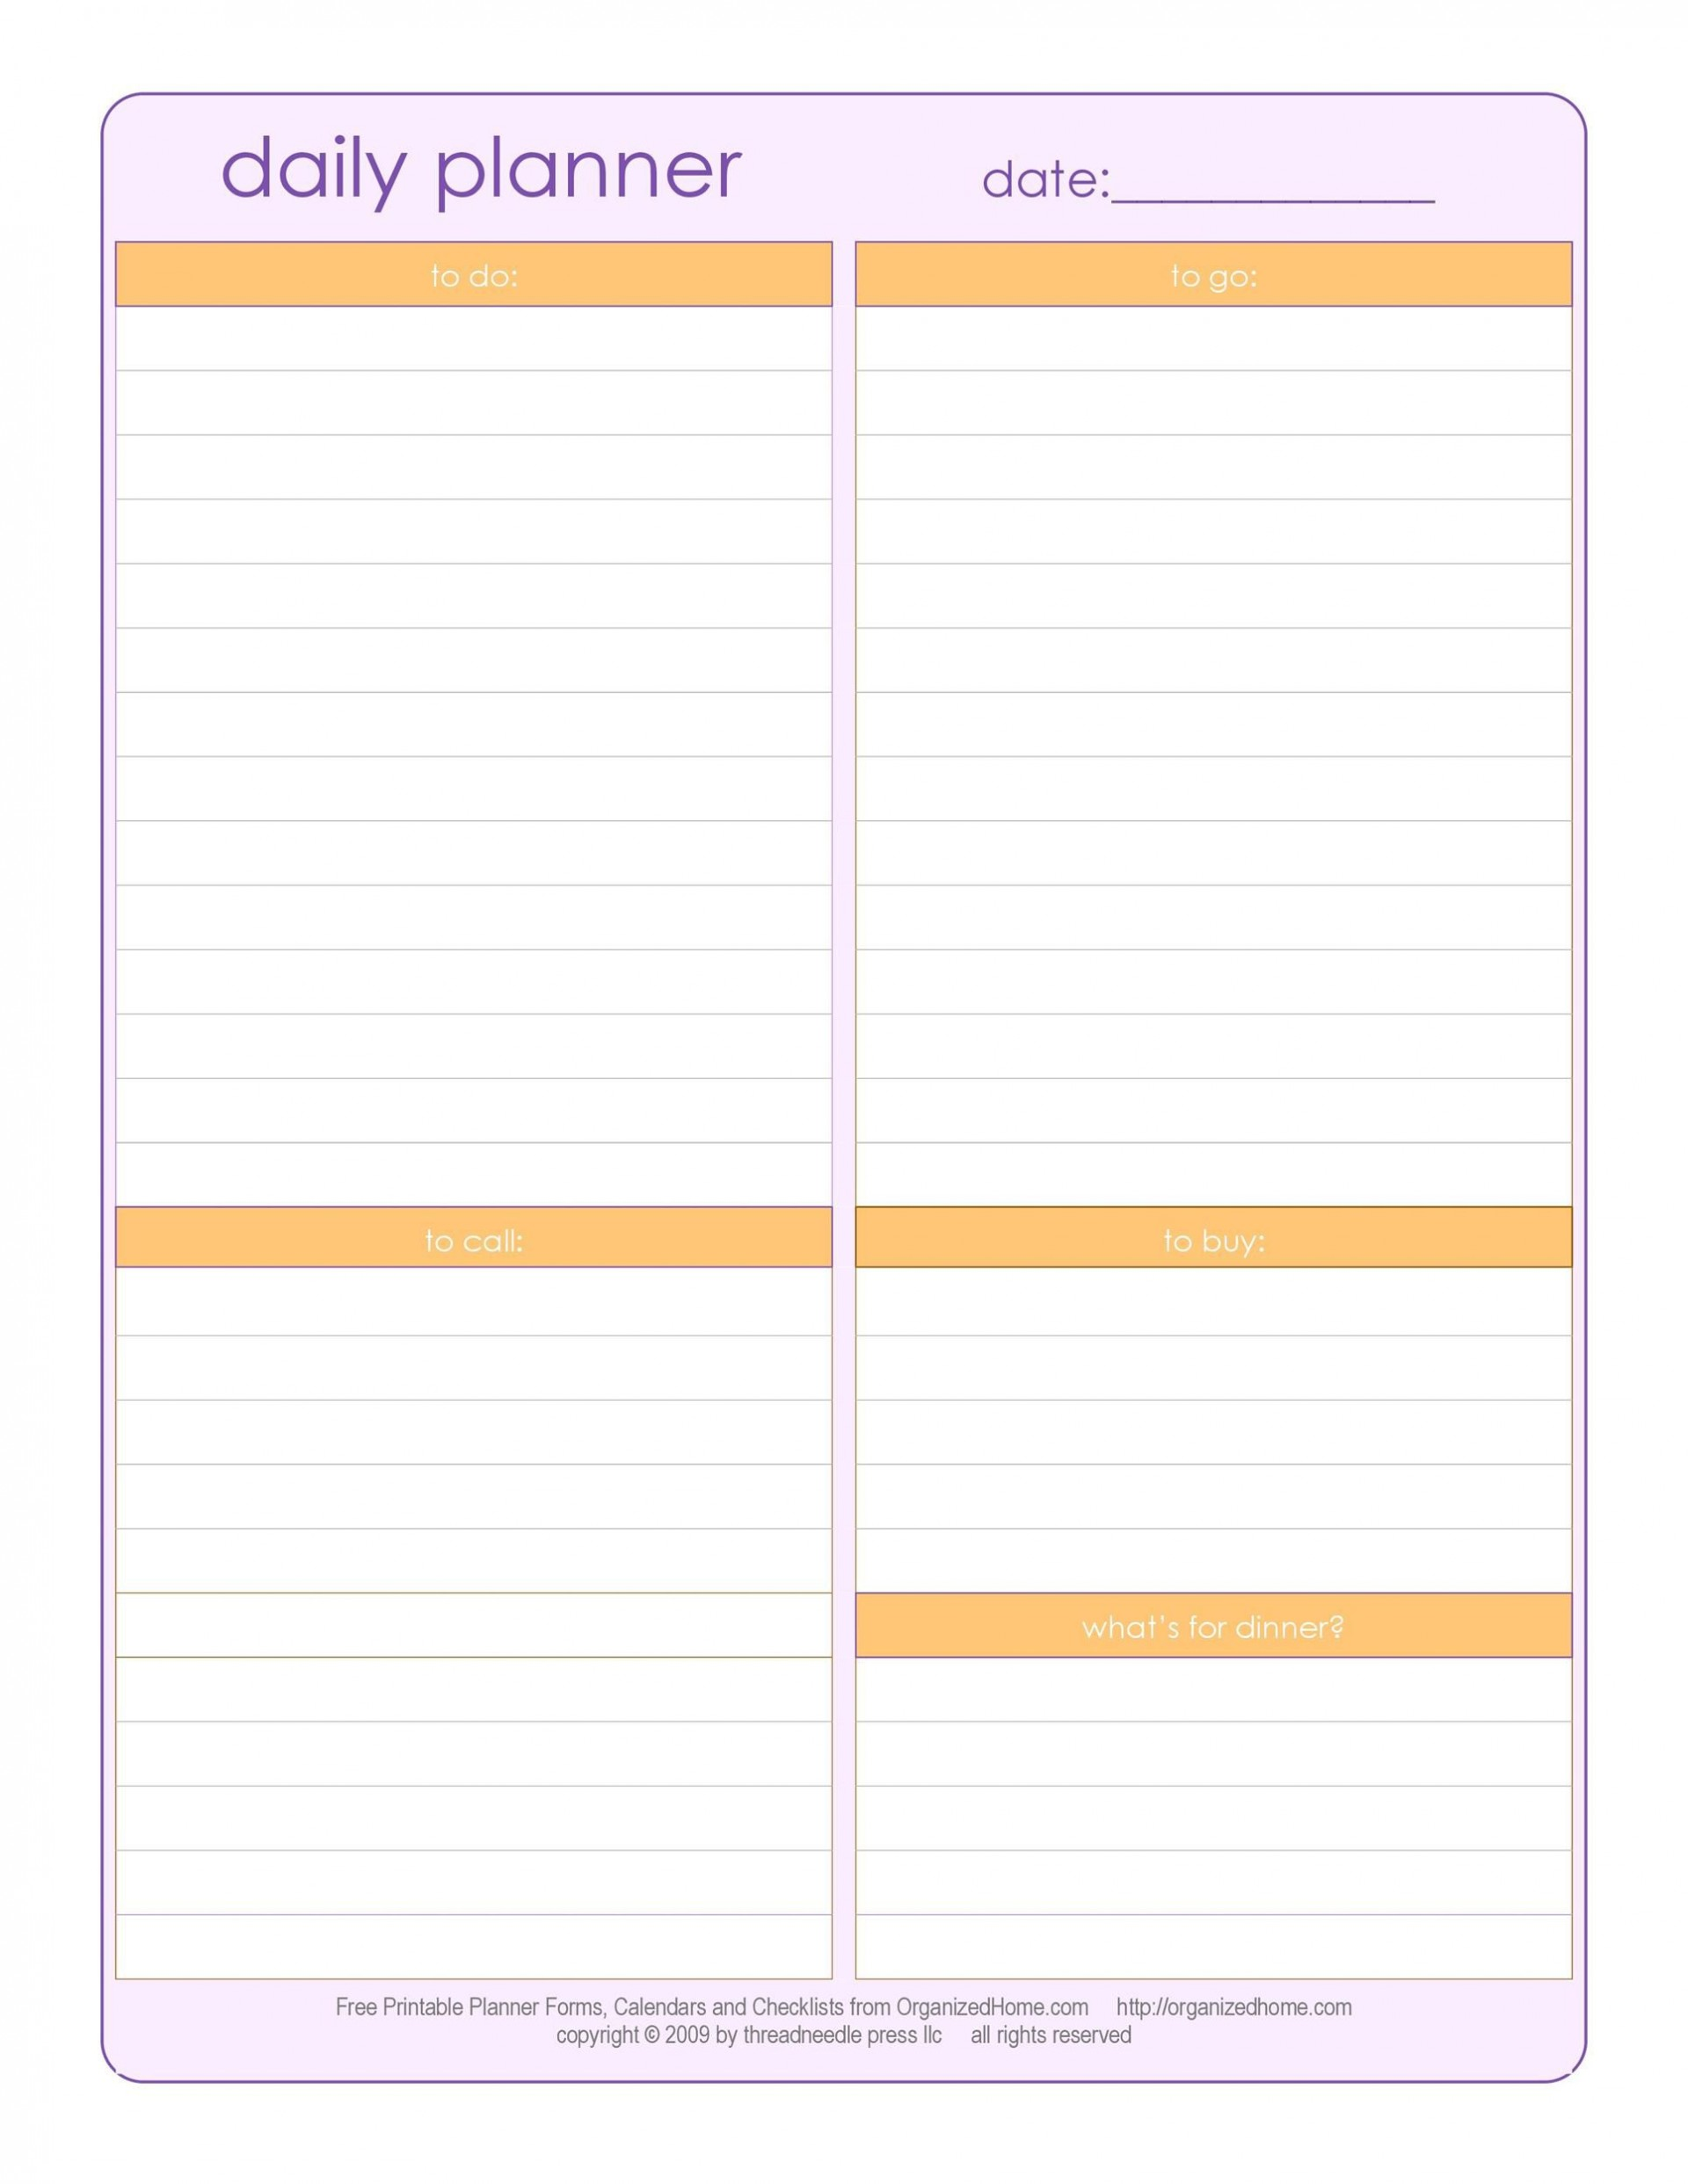 003 Best Printable Daily Schedule Template Inspiration 1920